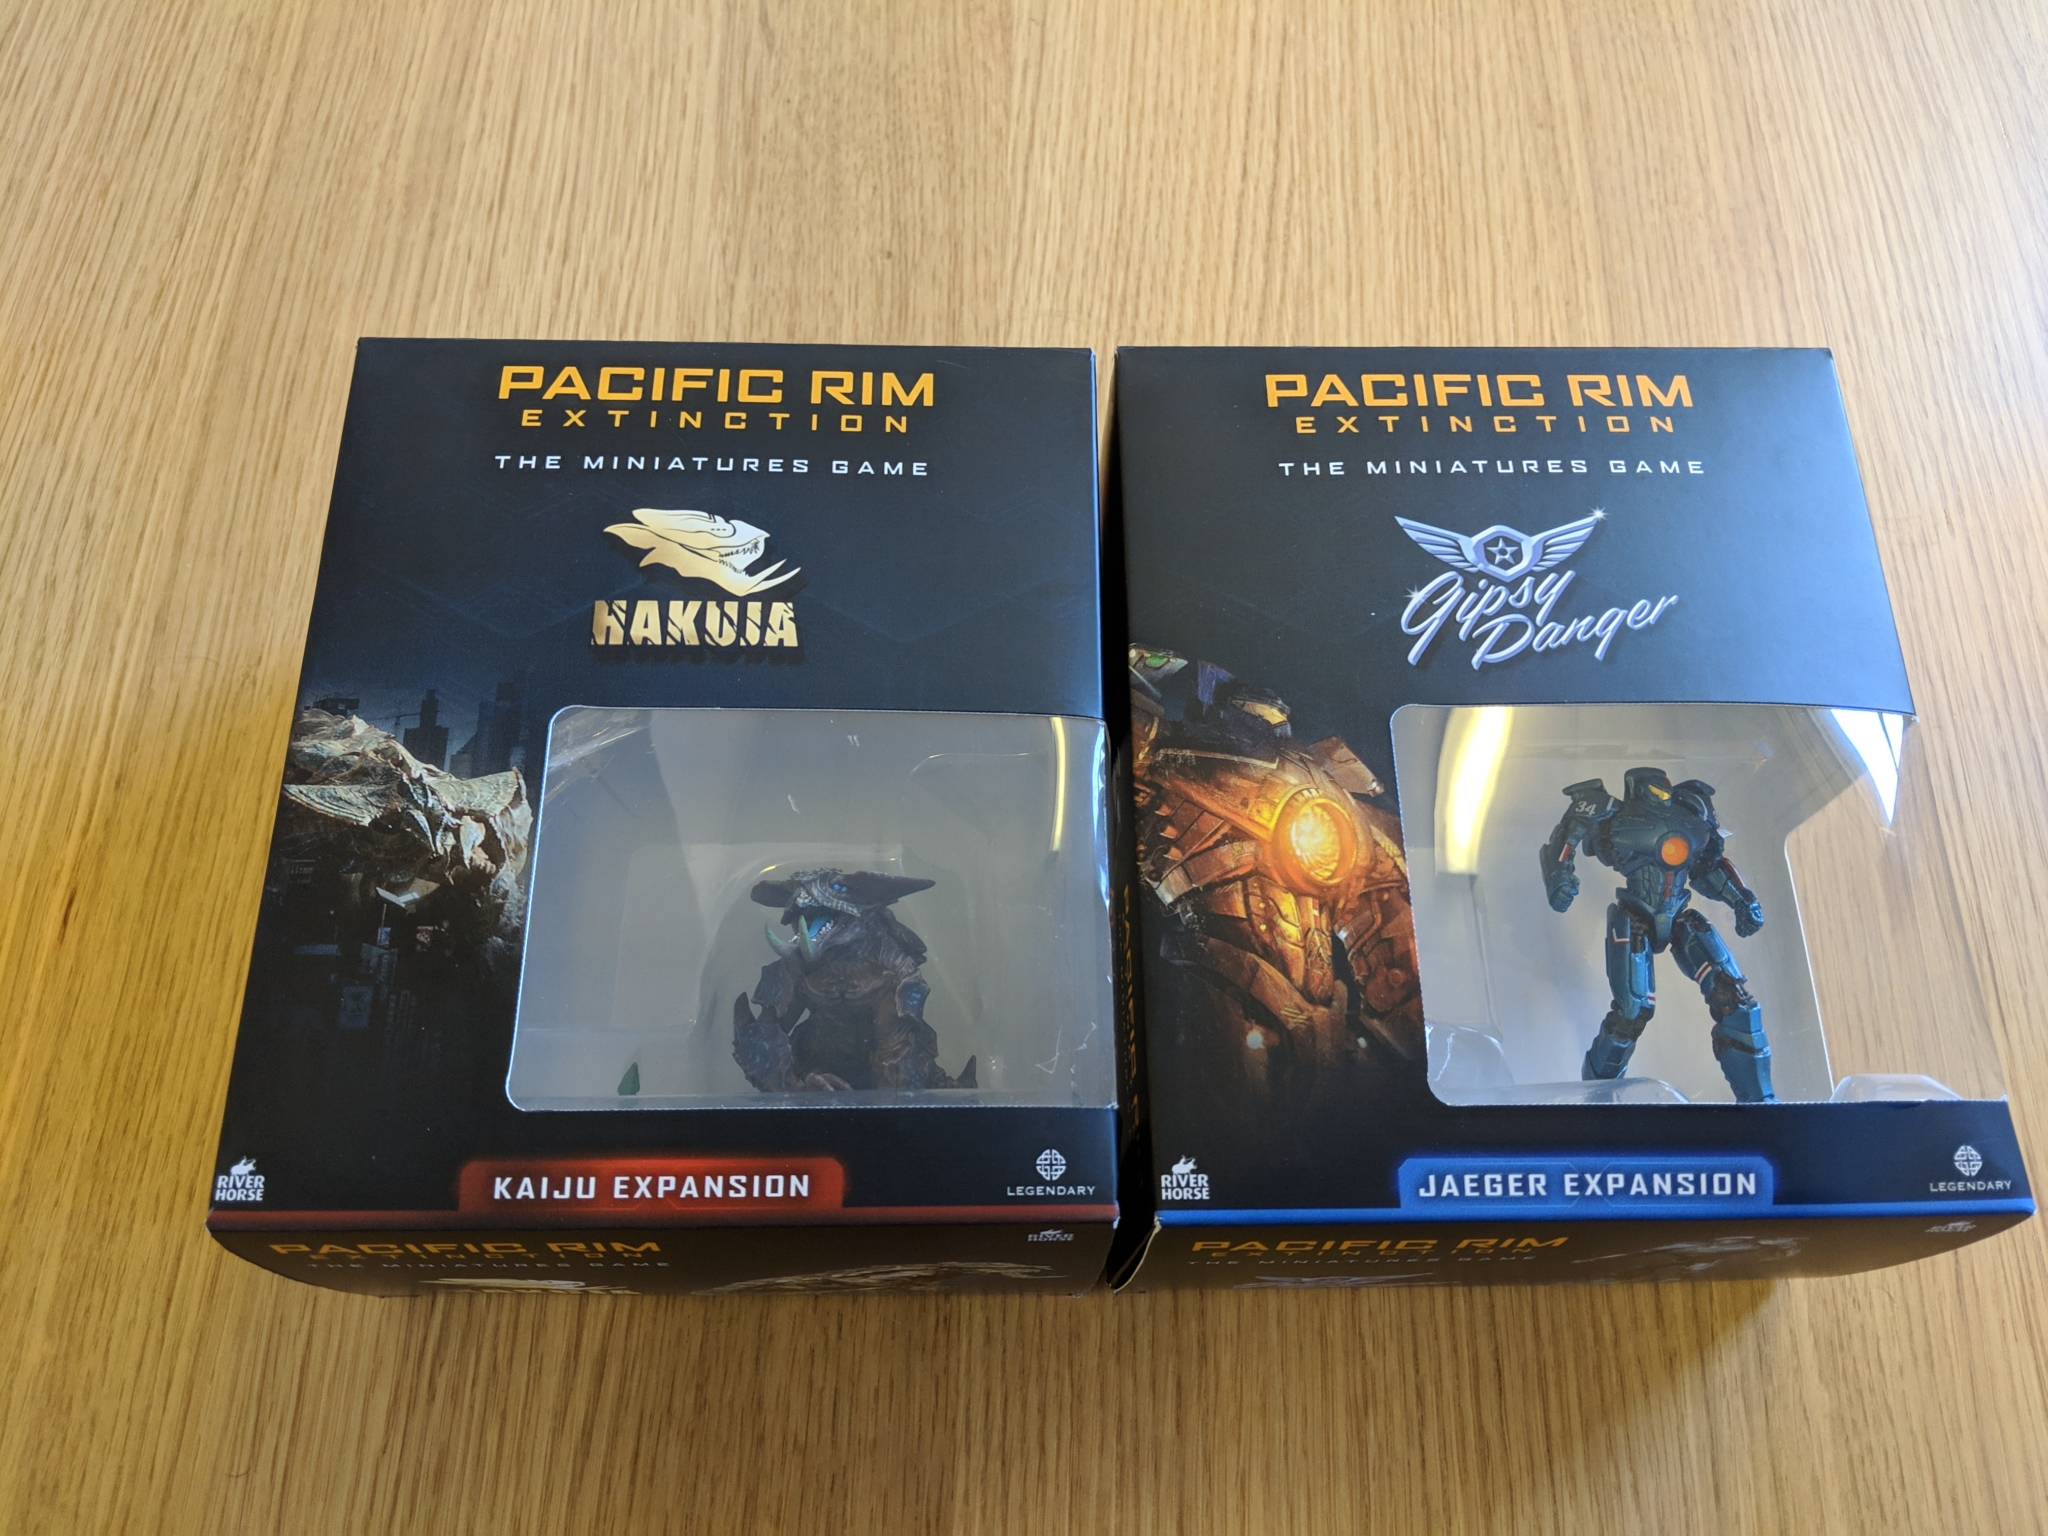 Pacific Rim: Extinction - Expansion Box Samples